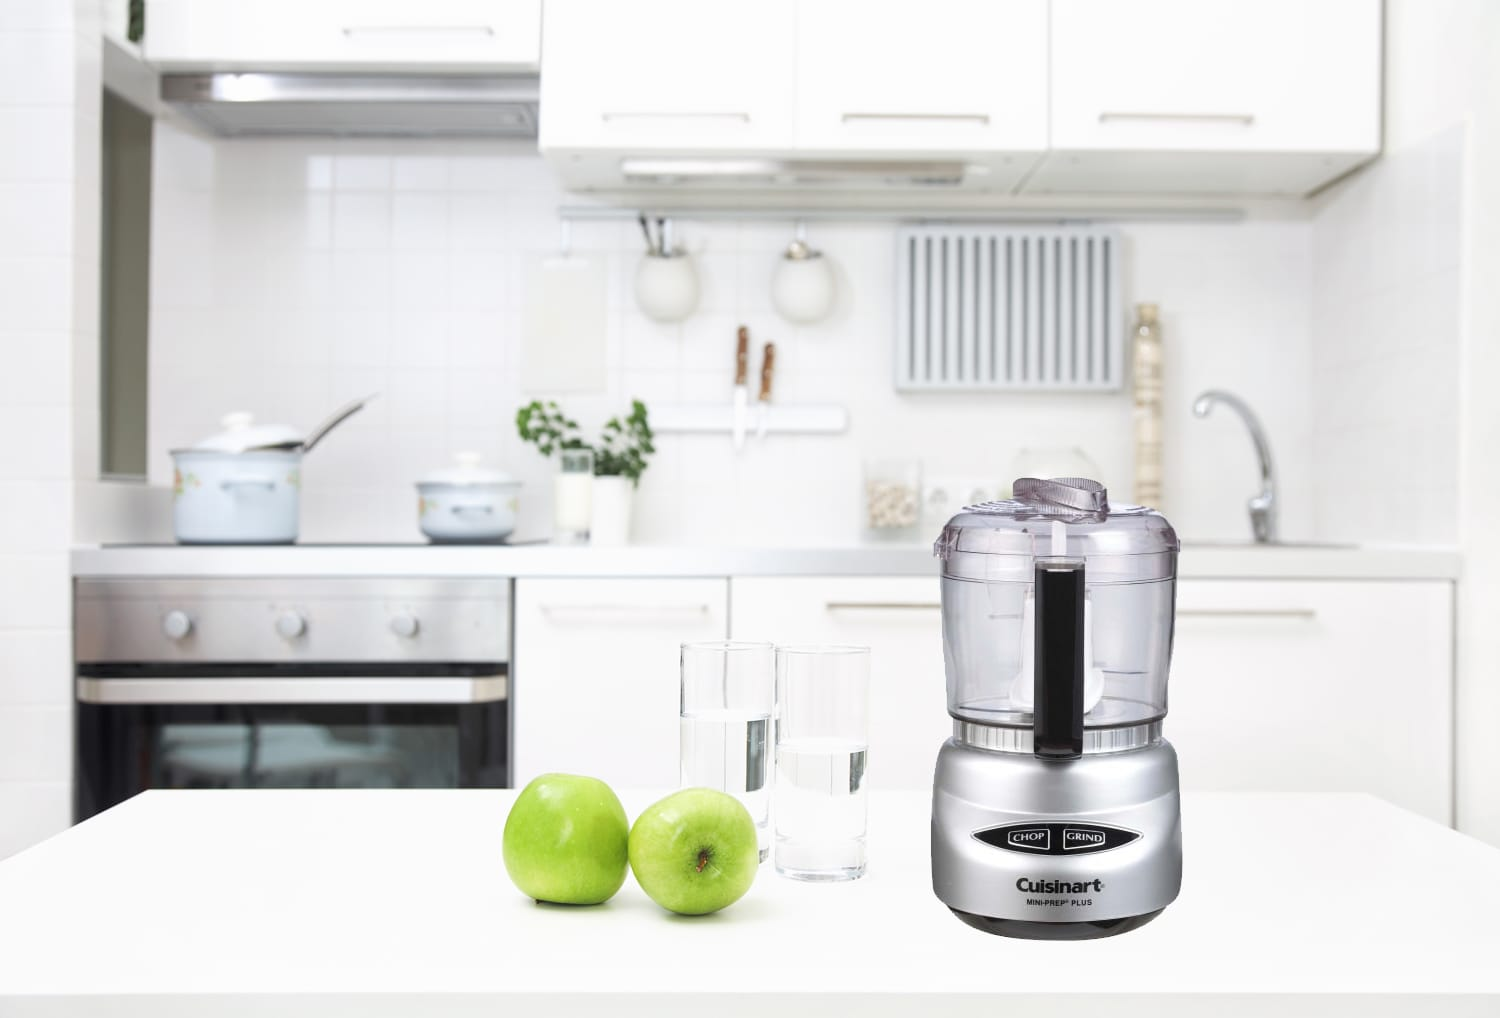 More Bang For Your Buck: Top-Rated Small Appliances for Under $50